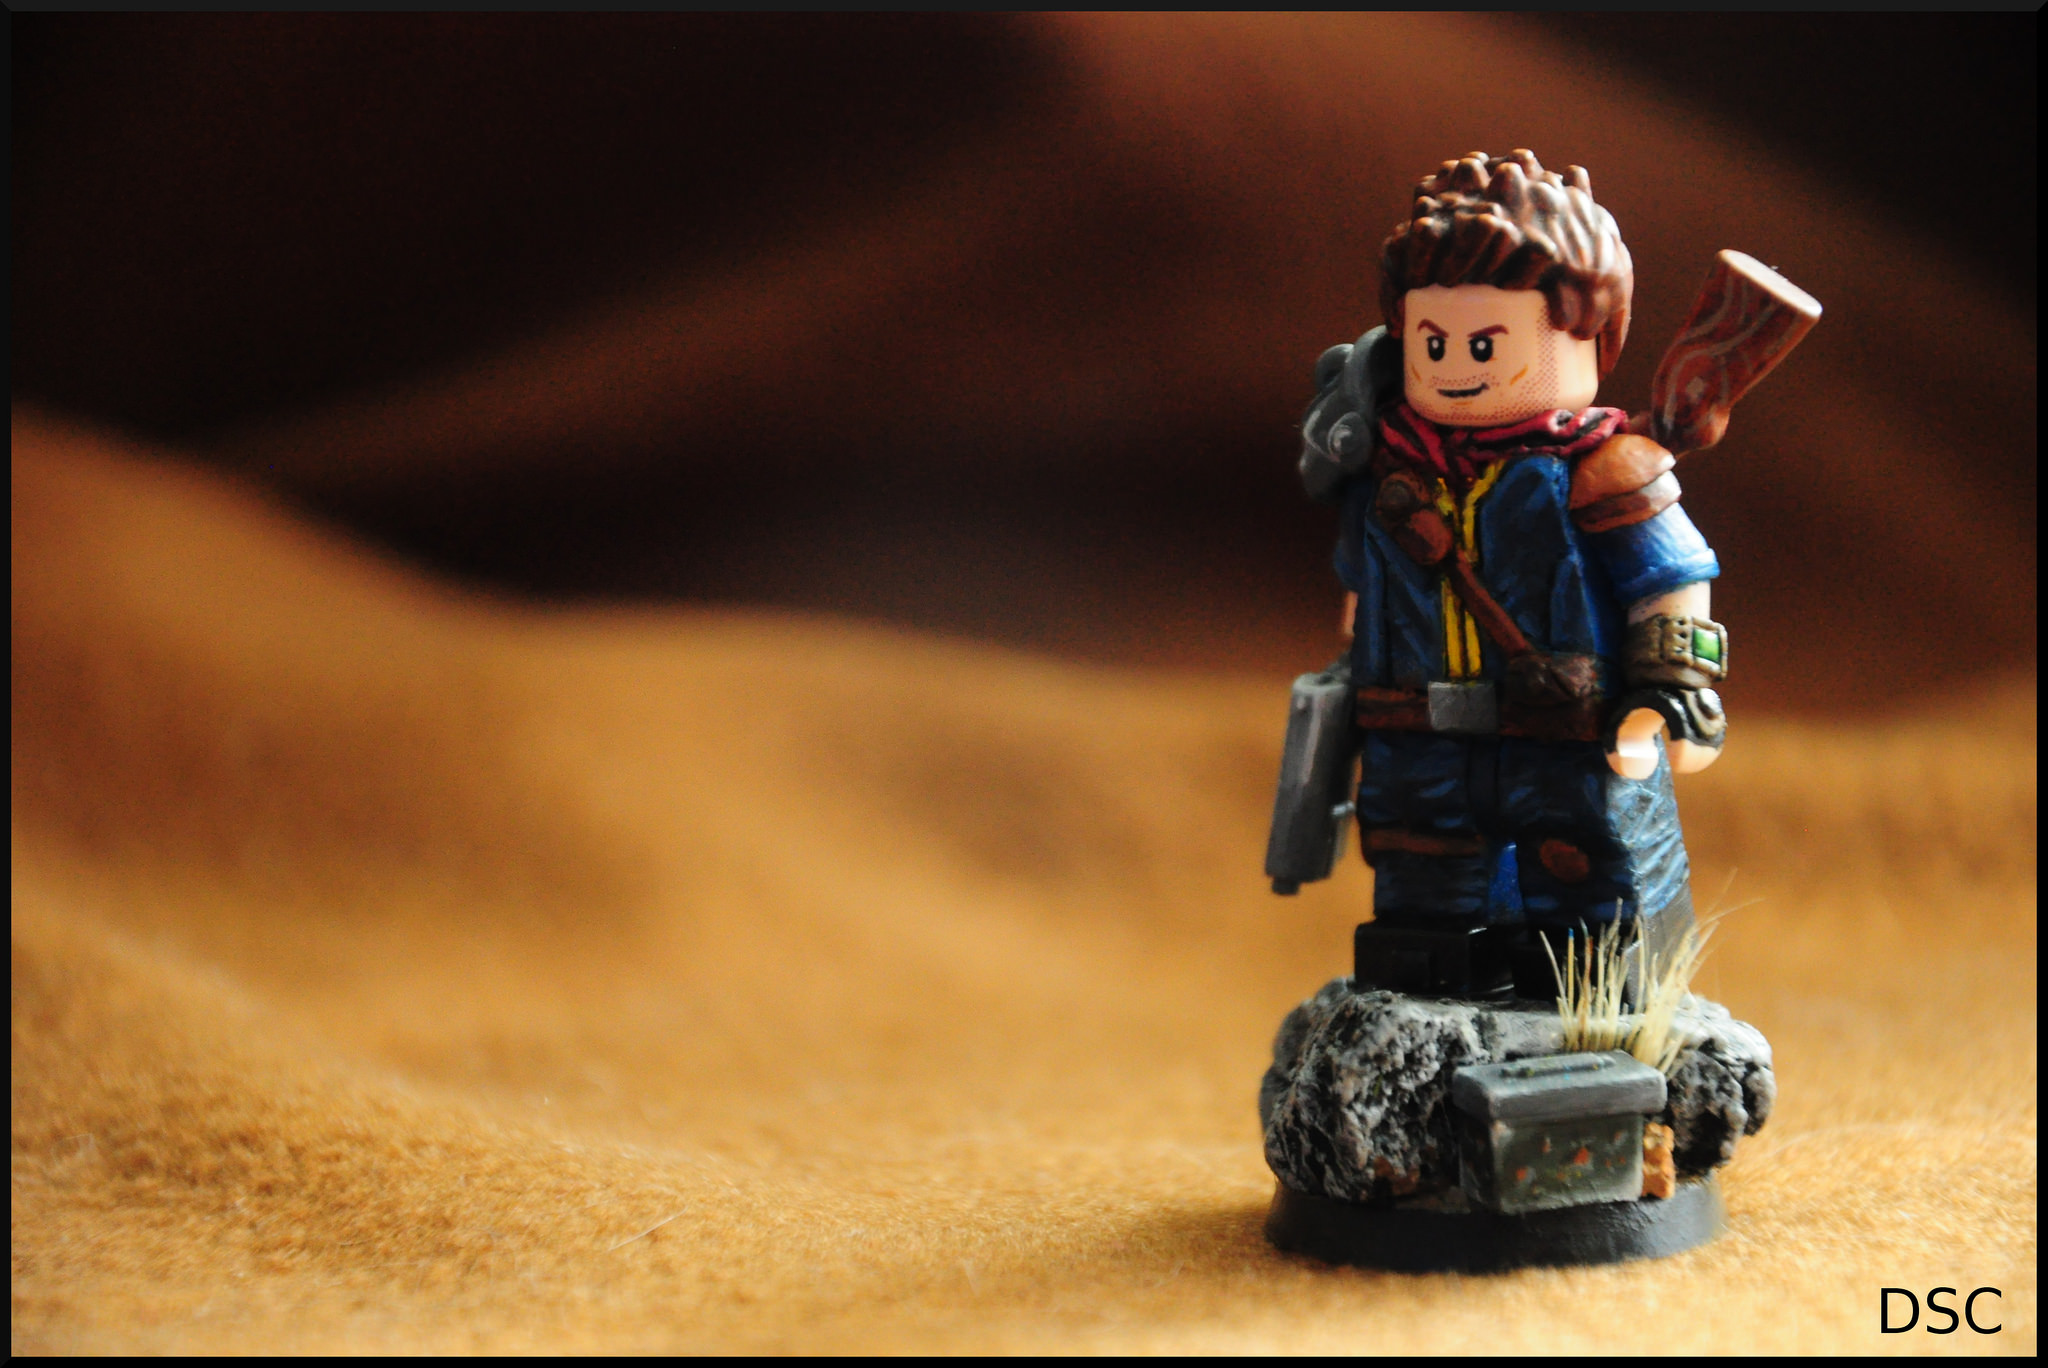 Fallout 4 gets its own Lego — but you can't buy it